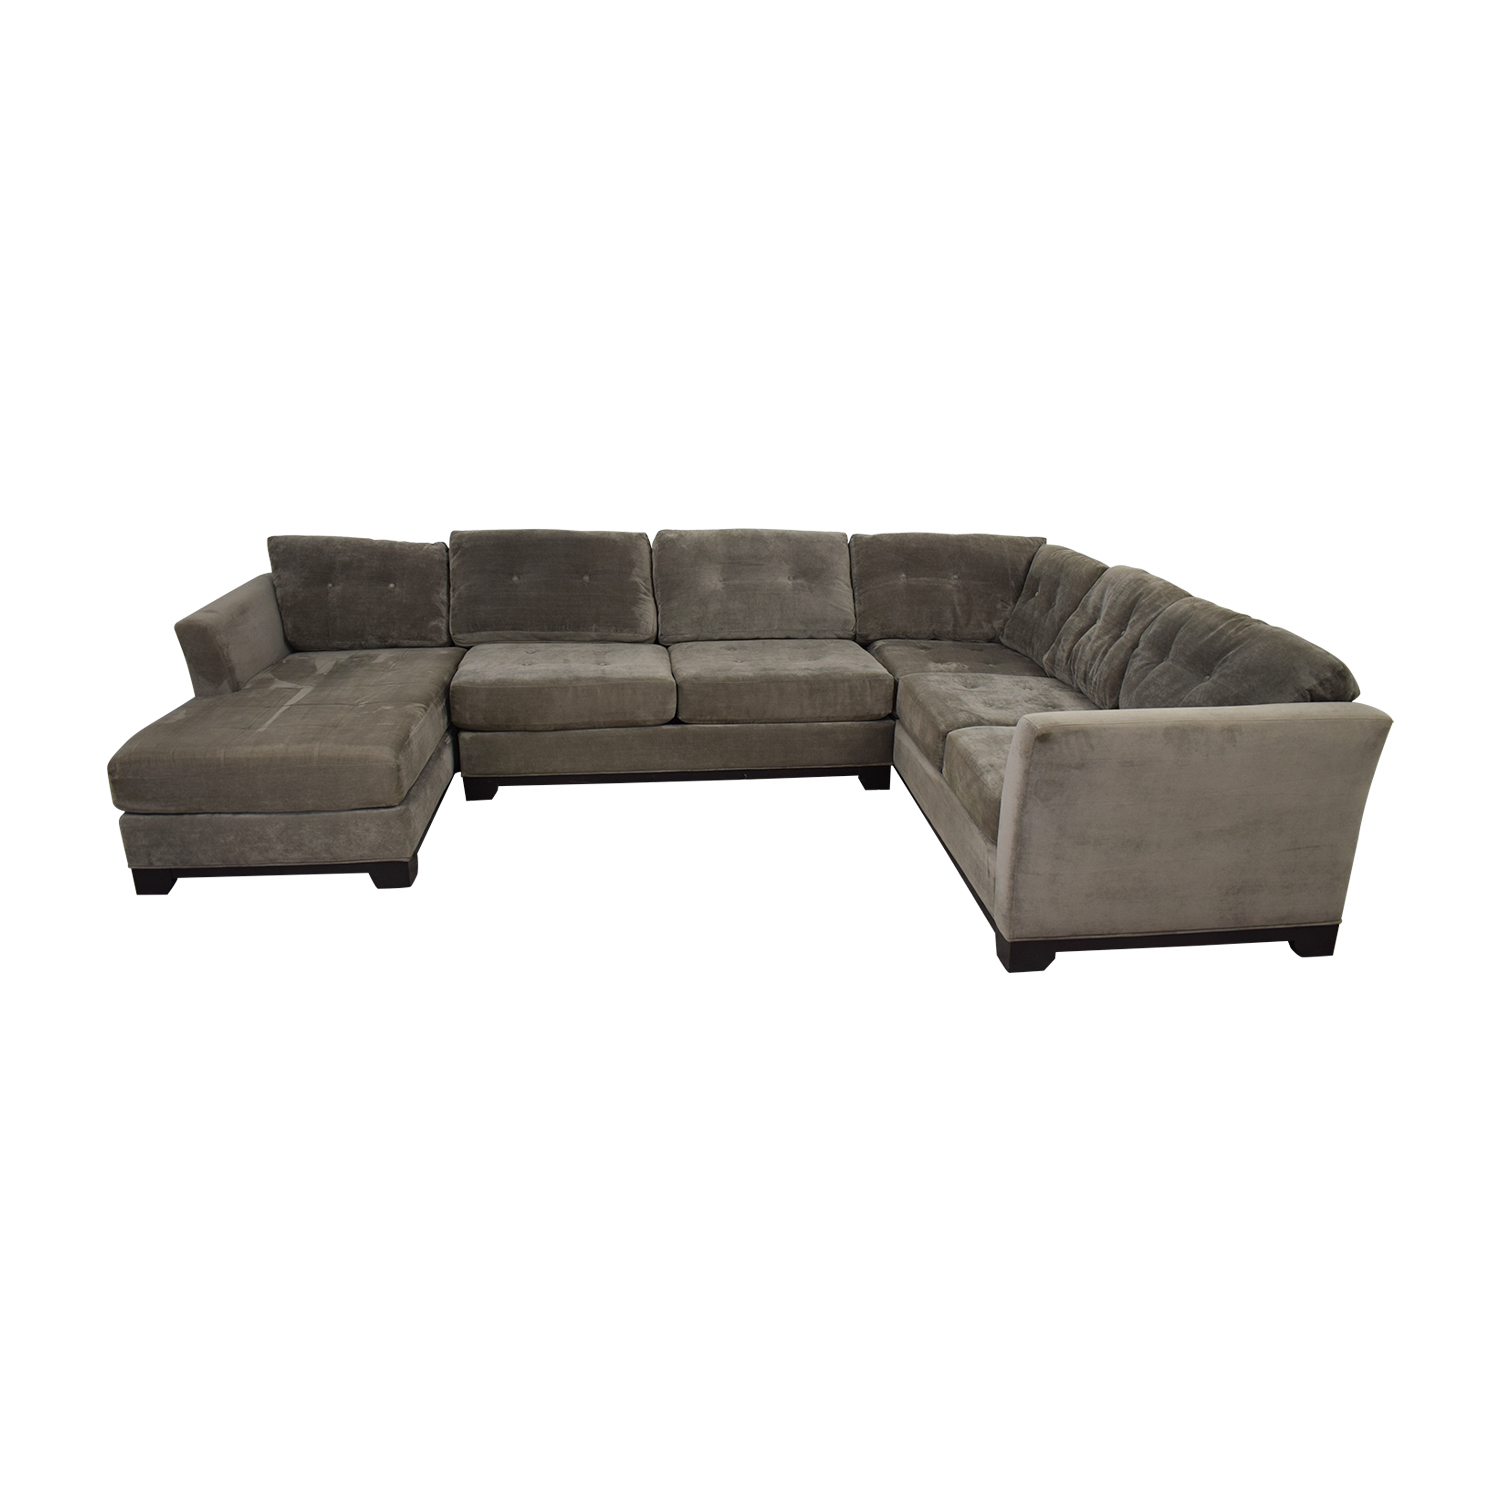 Jonathan Lewis Jonathan Lewis Elliot Grey Tufted Microfiber Chaise U-Shaped Sectional discount